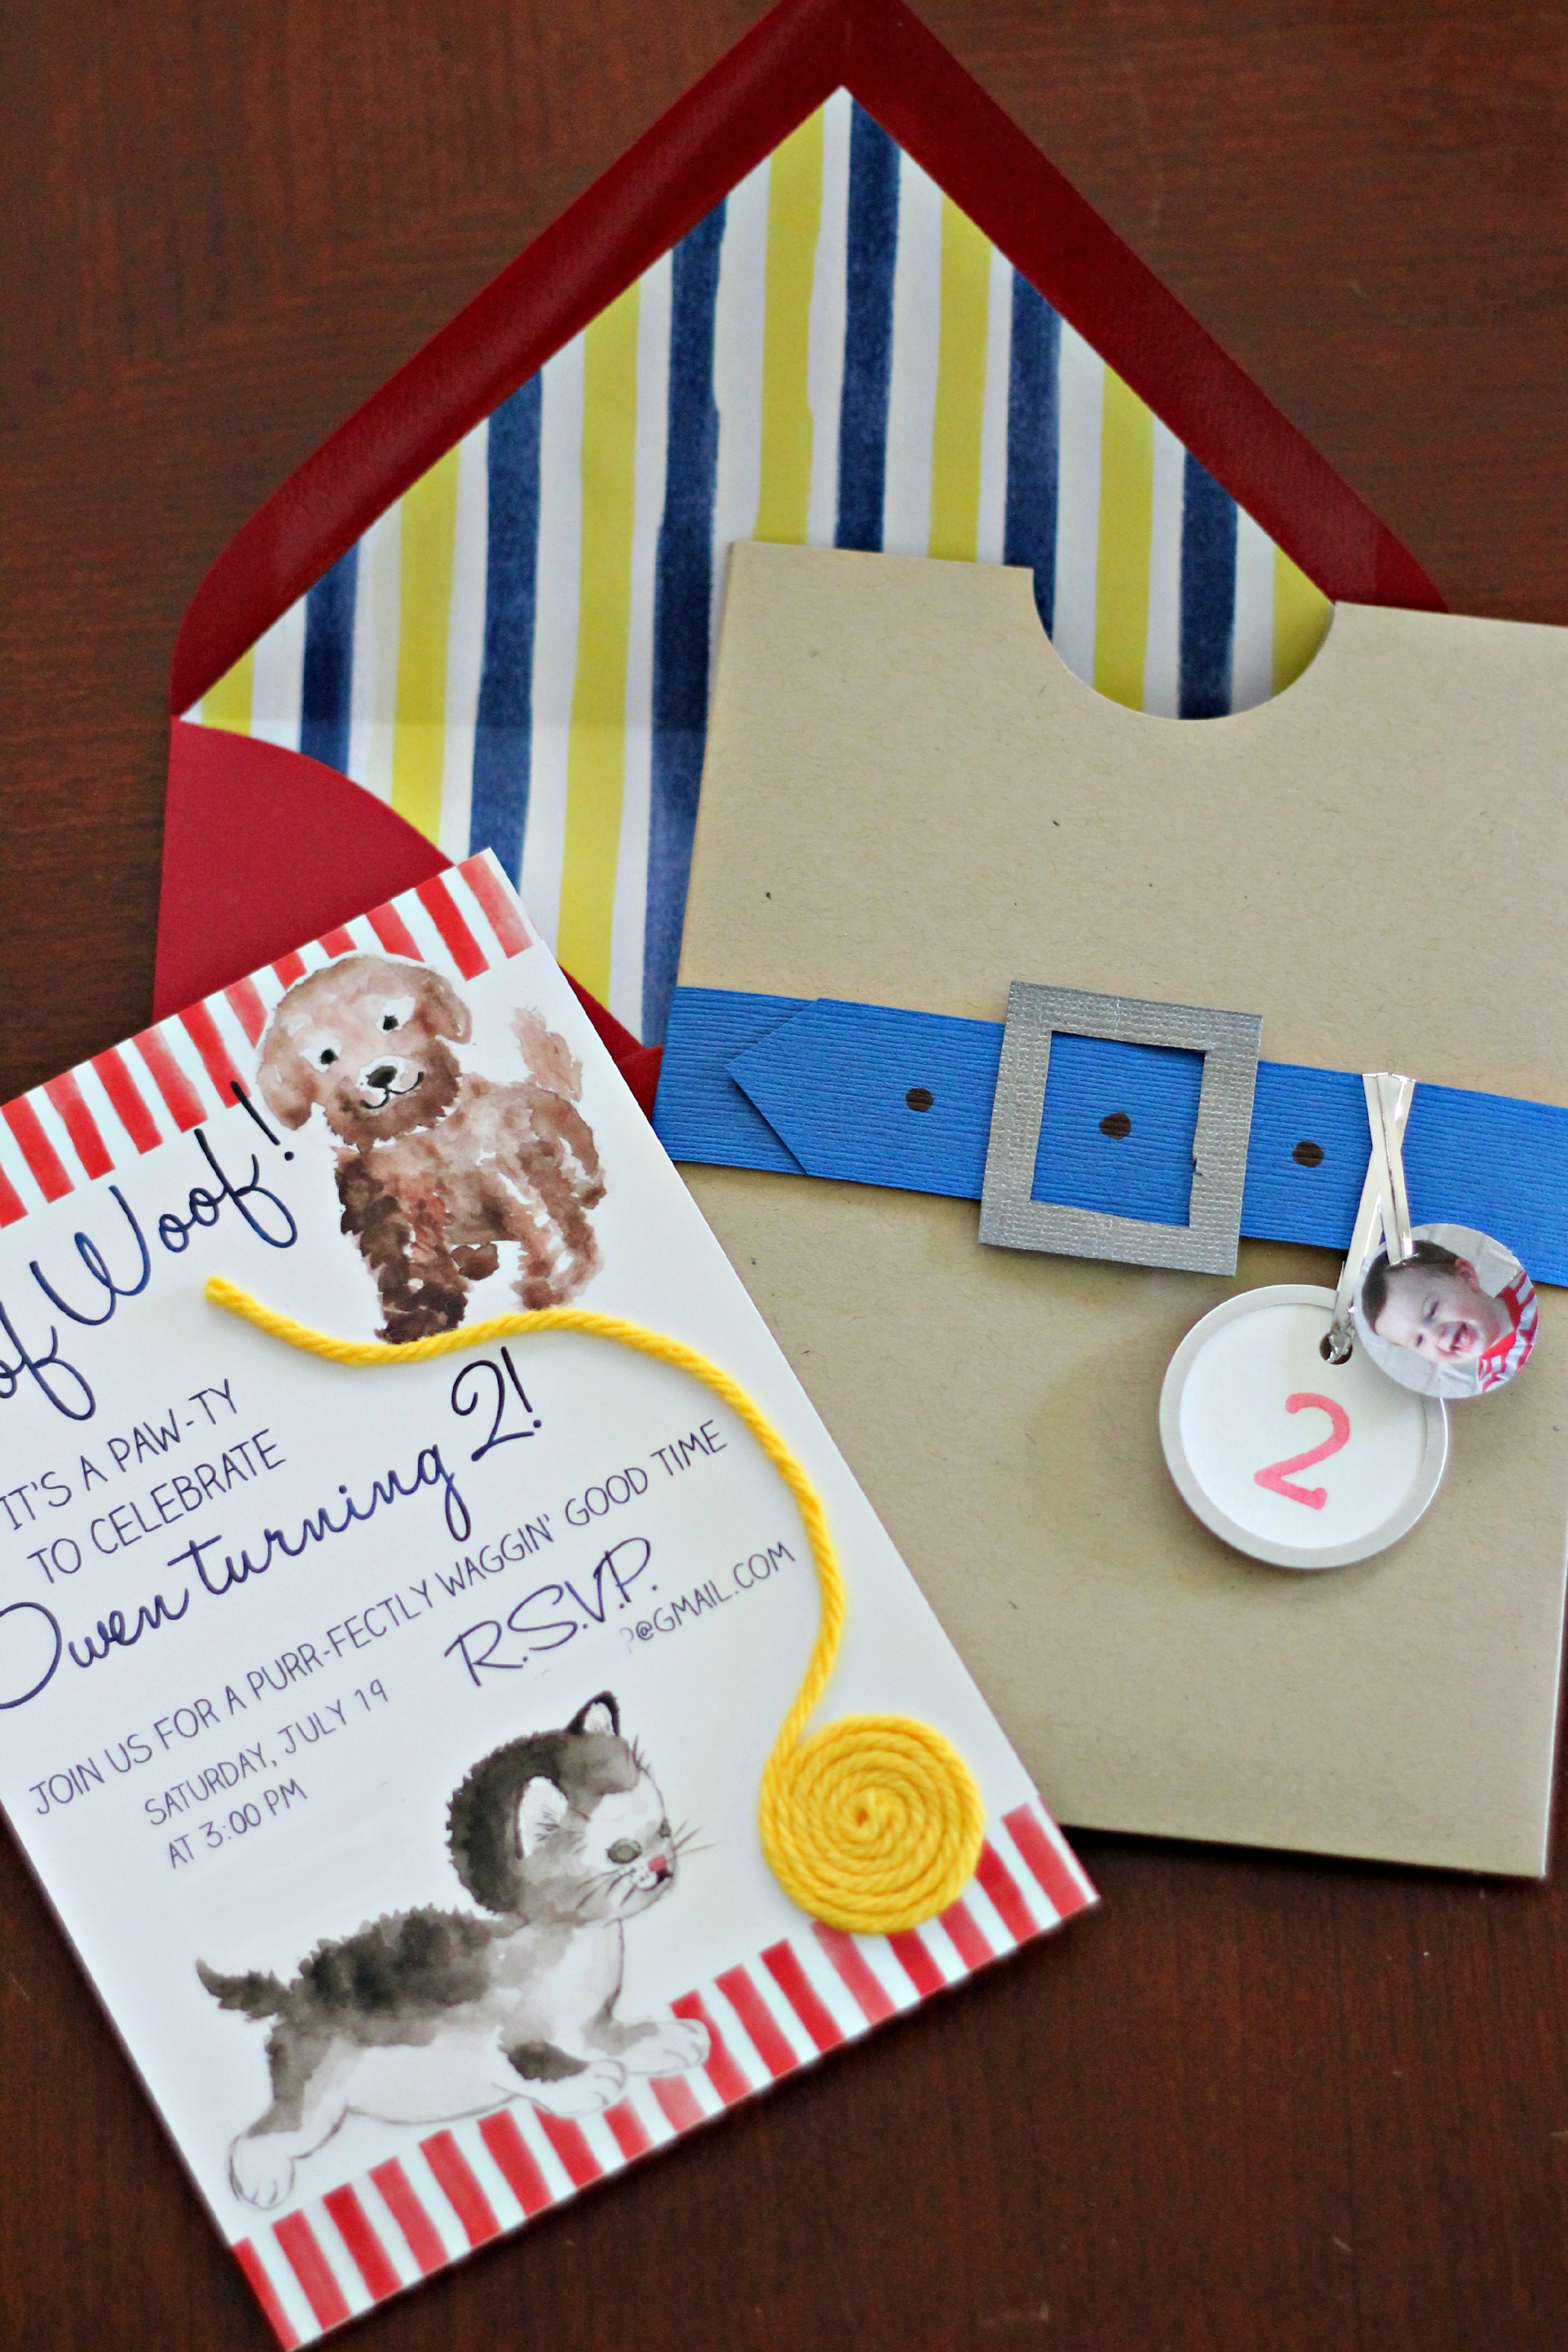 A Purr-fect Invitation for Owen's Second Birthday Party